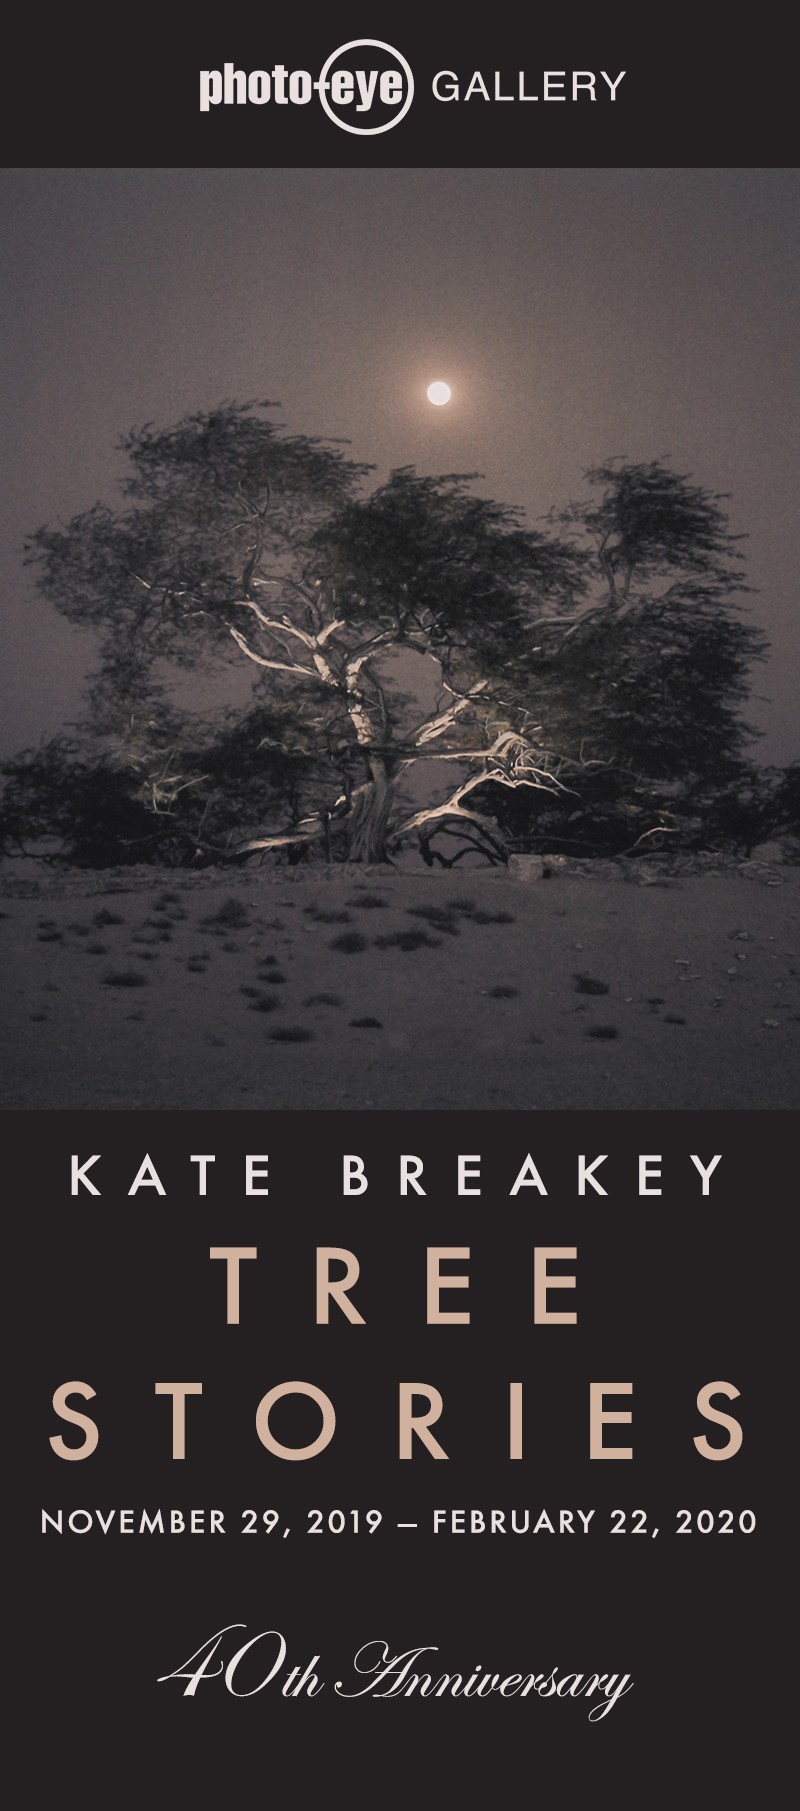 Tree Stories: Kate Breakey